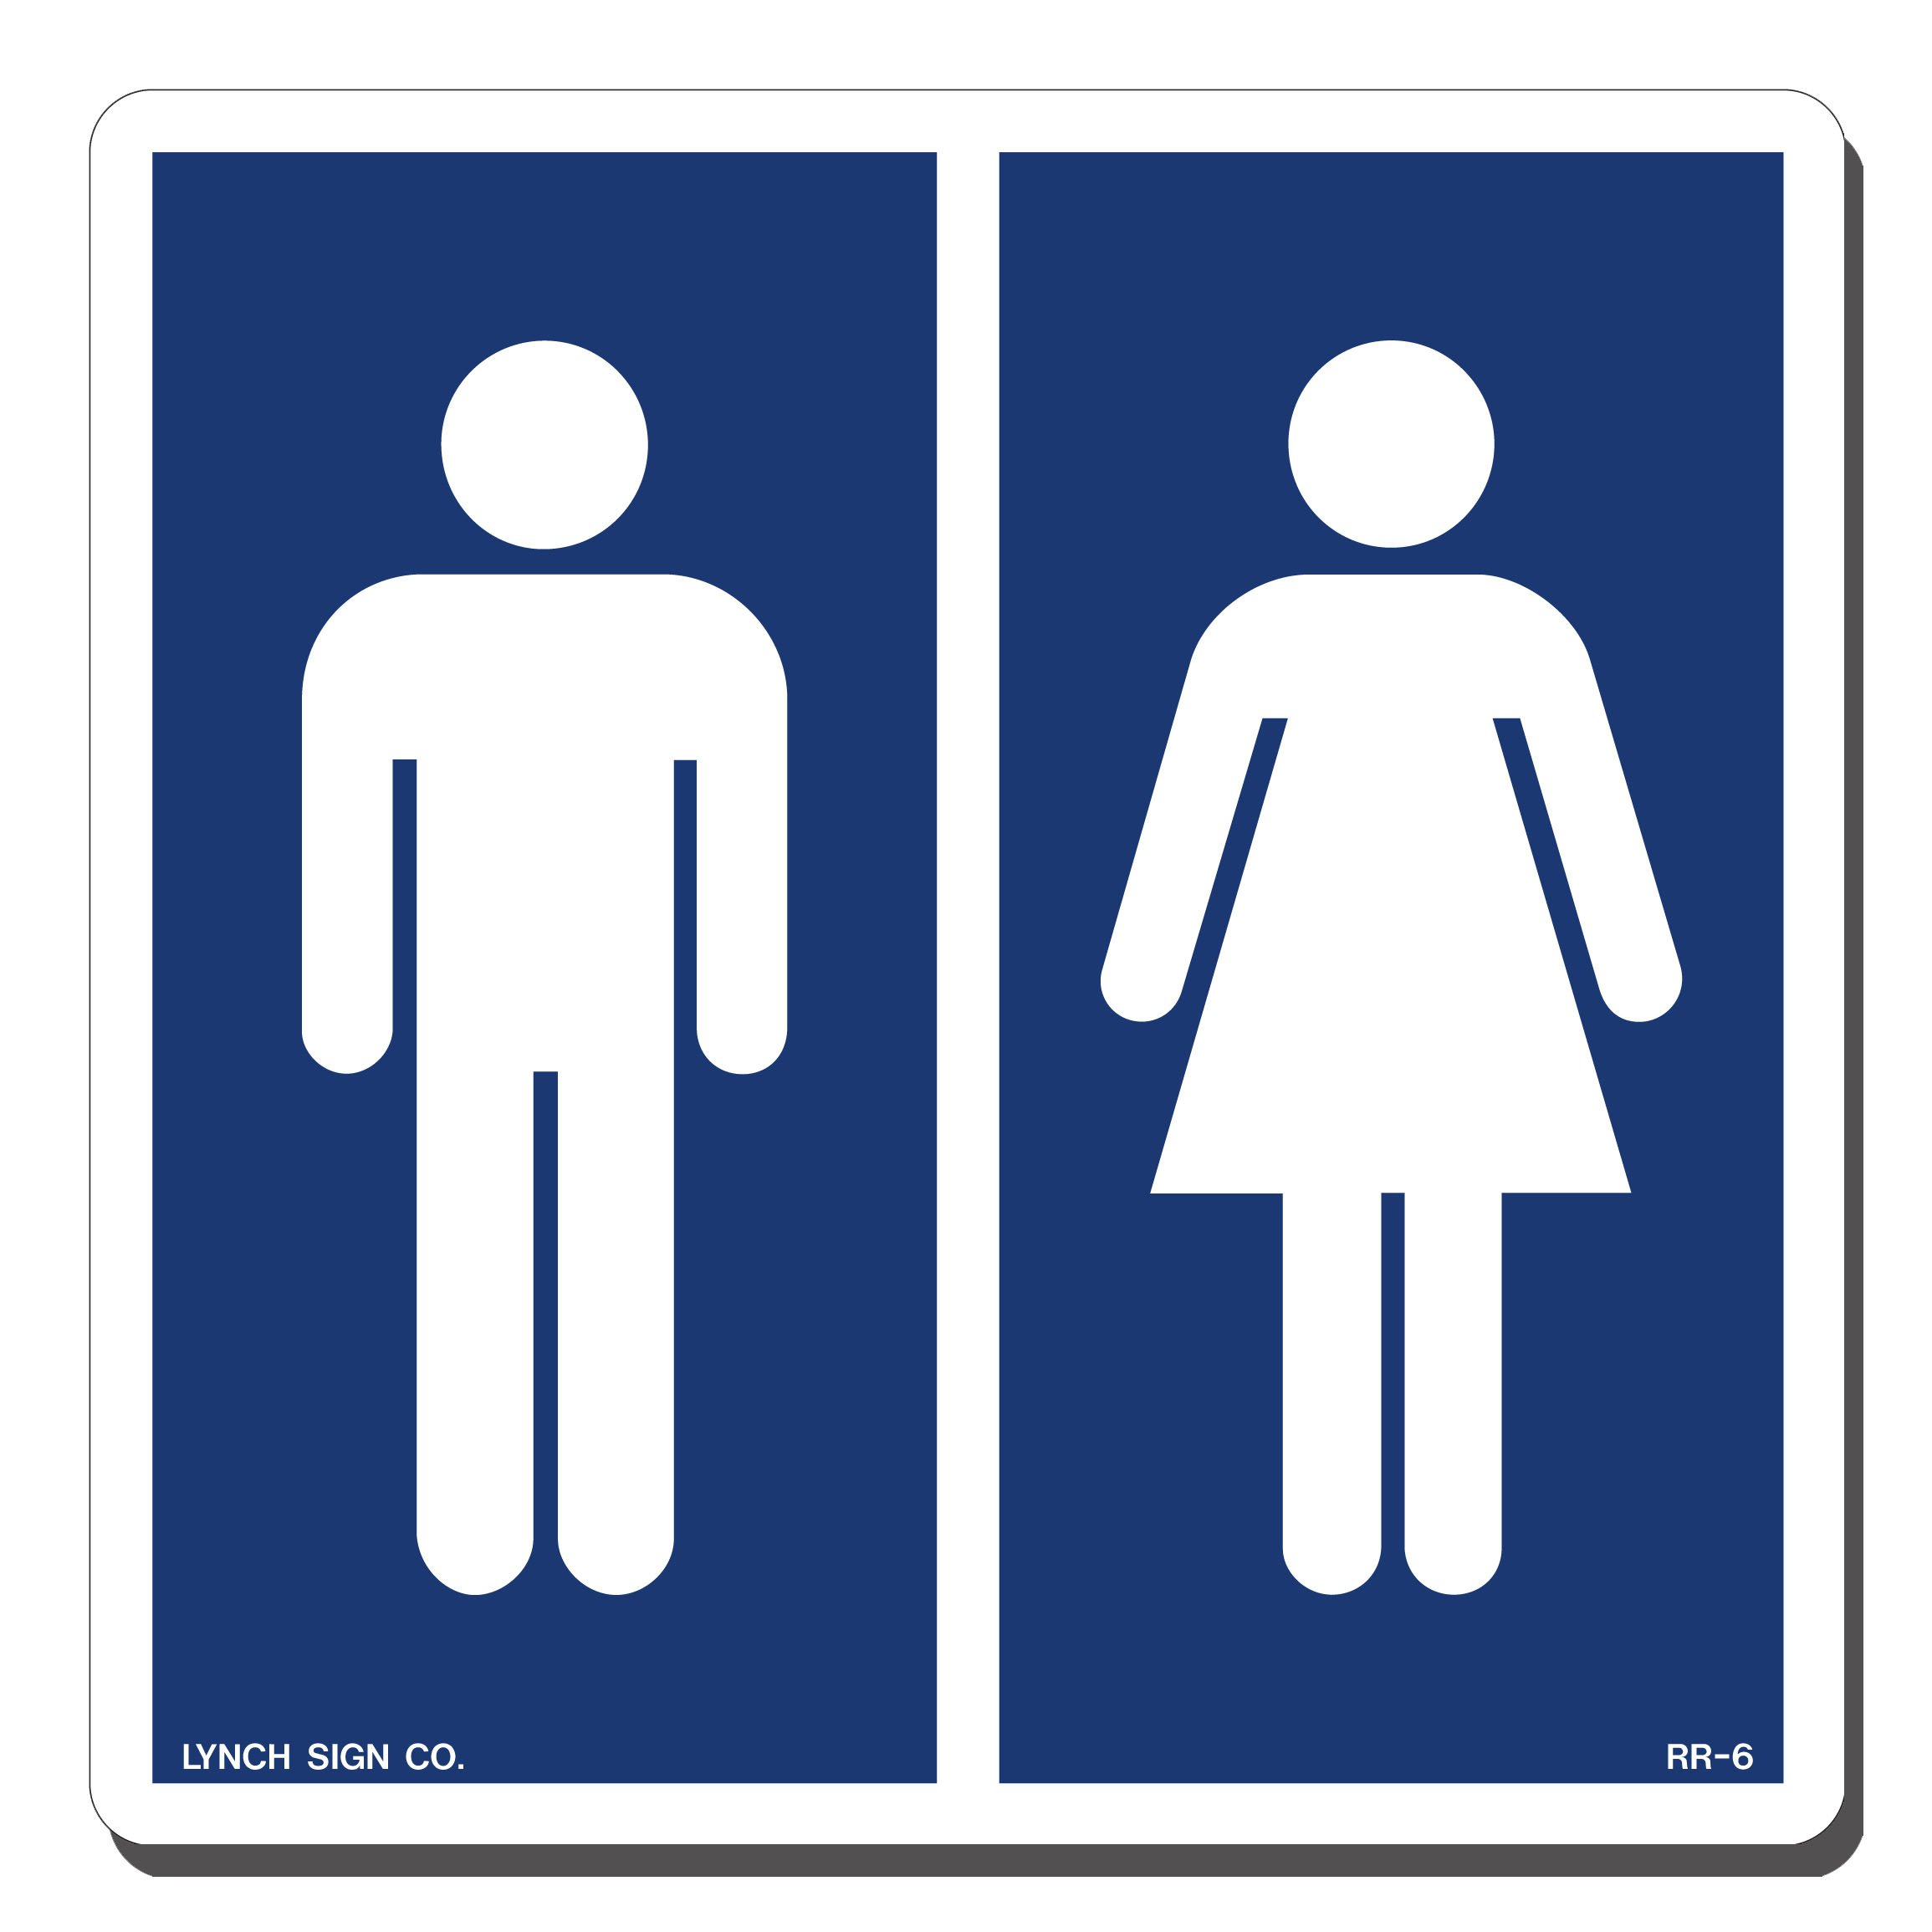 Lynch Signs 7 in. x 7 in. Sign Blue on White Plastic Men Women Symbol